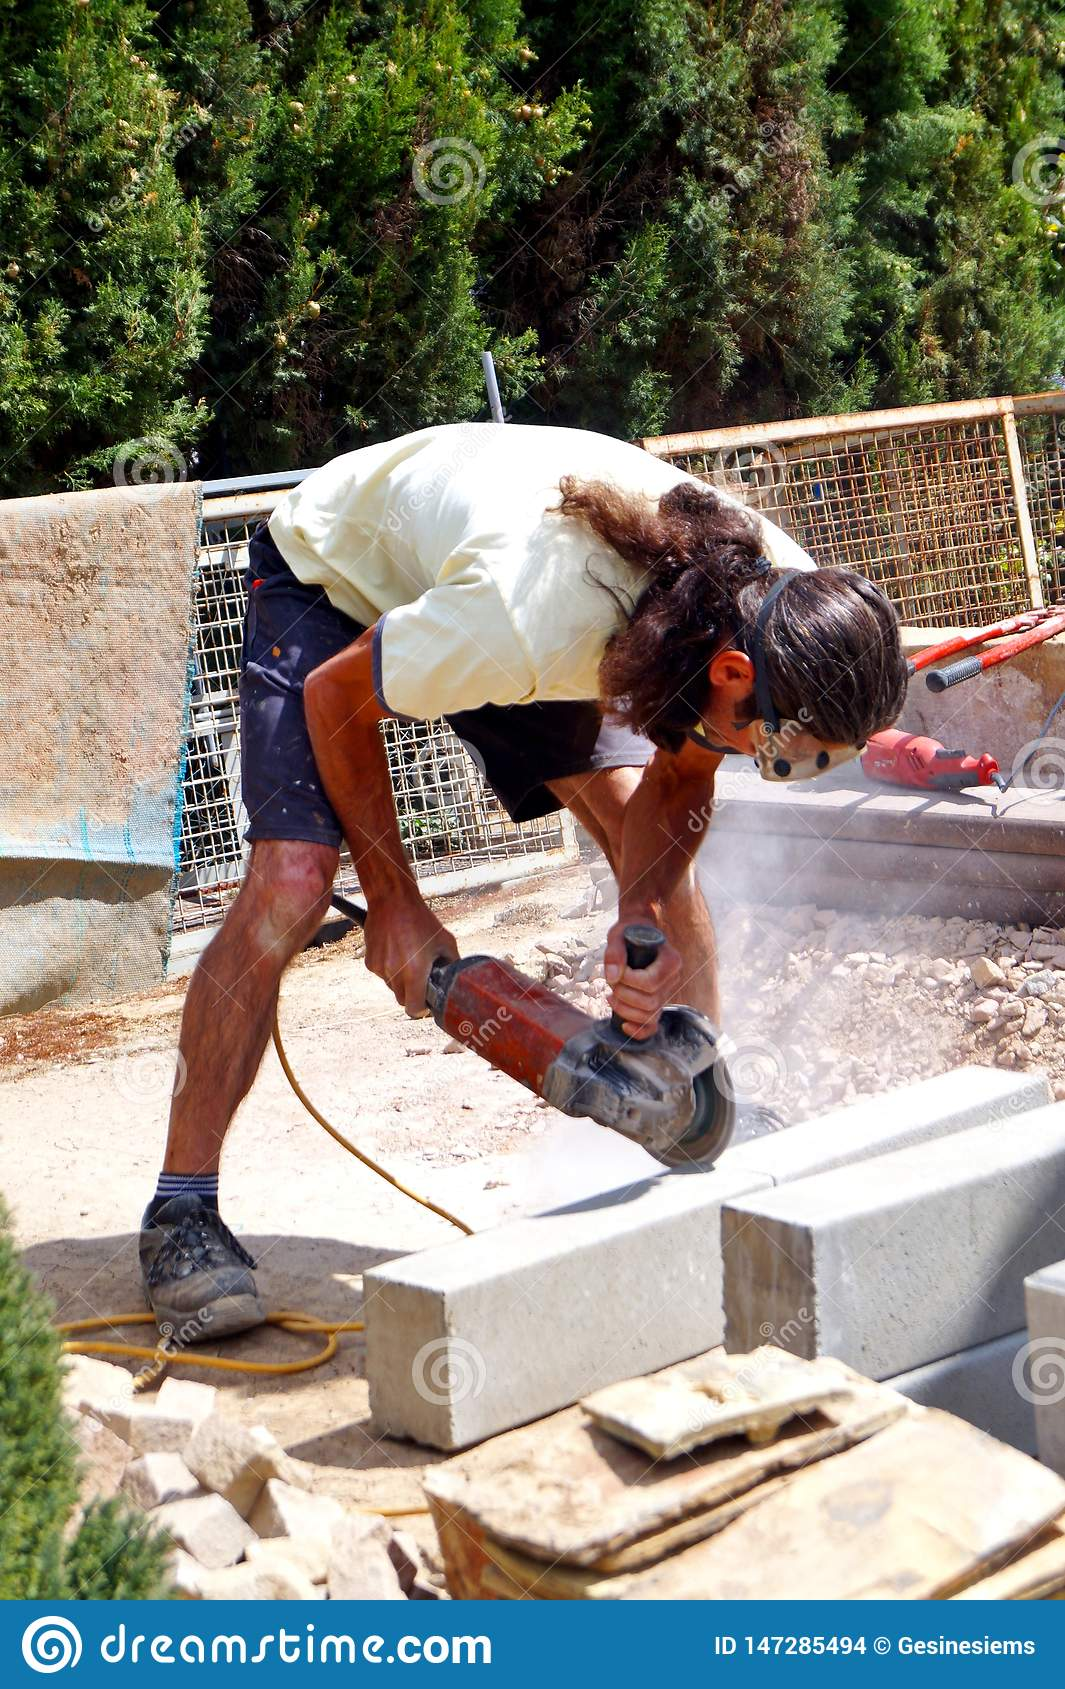 A man working cutting concrete block with electric saw hand working.